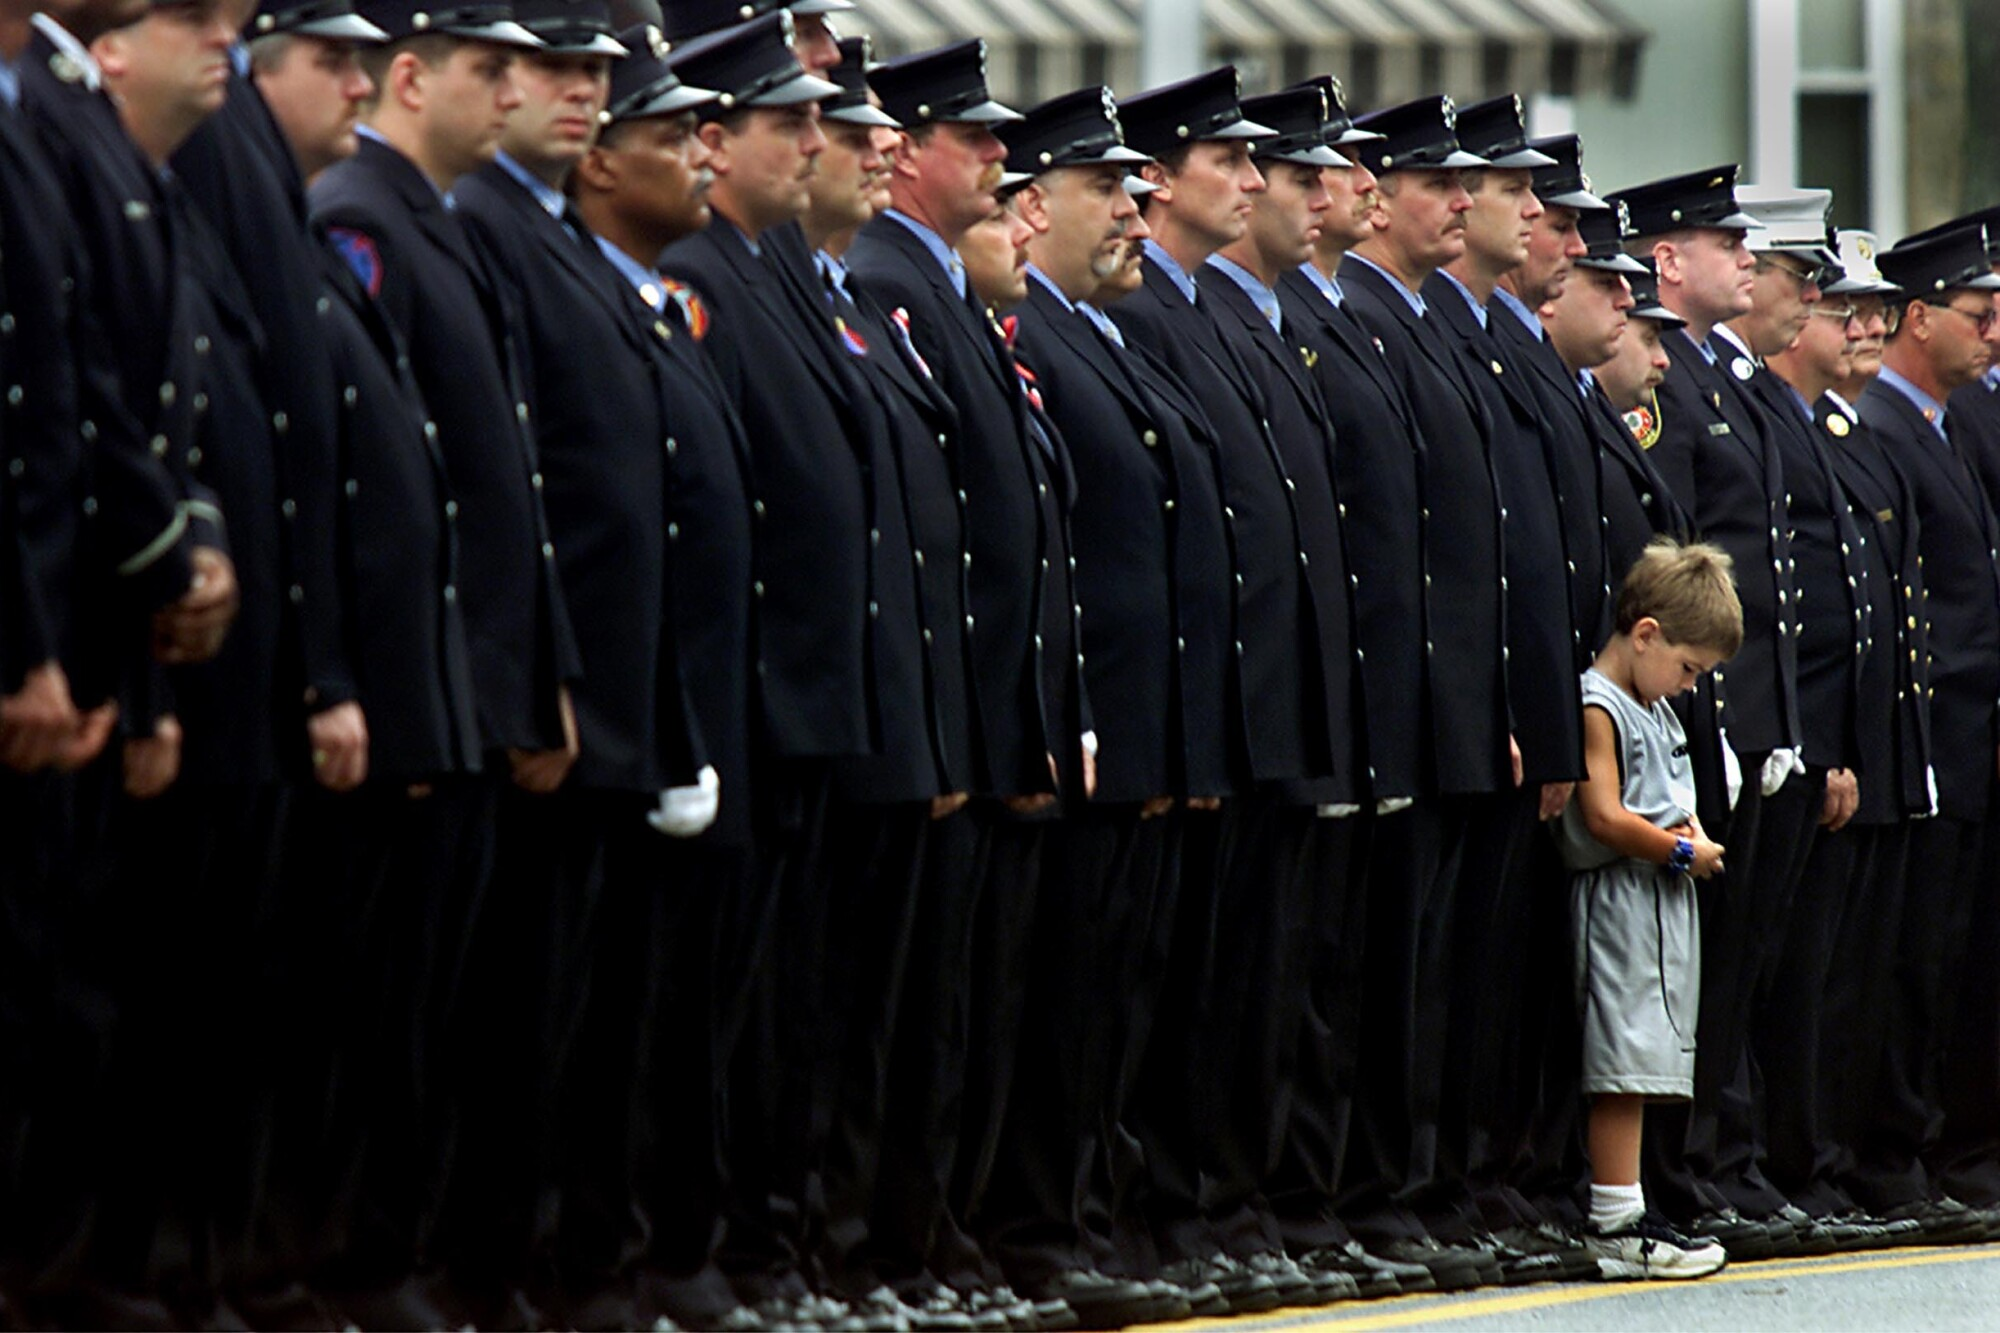 A small boy stands before a long line of firefighters